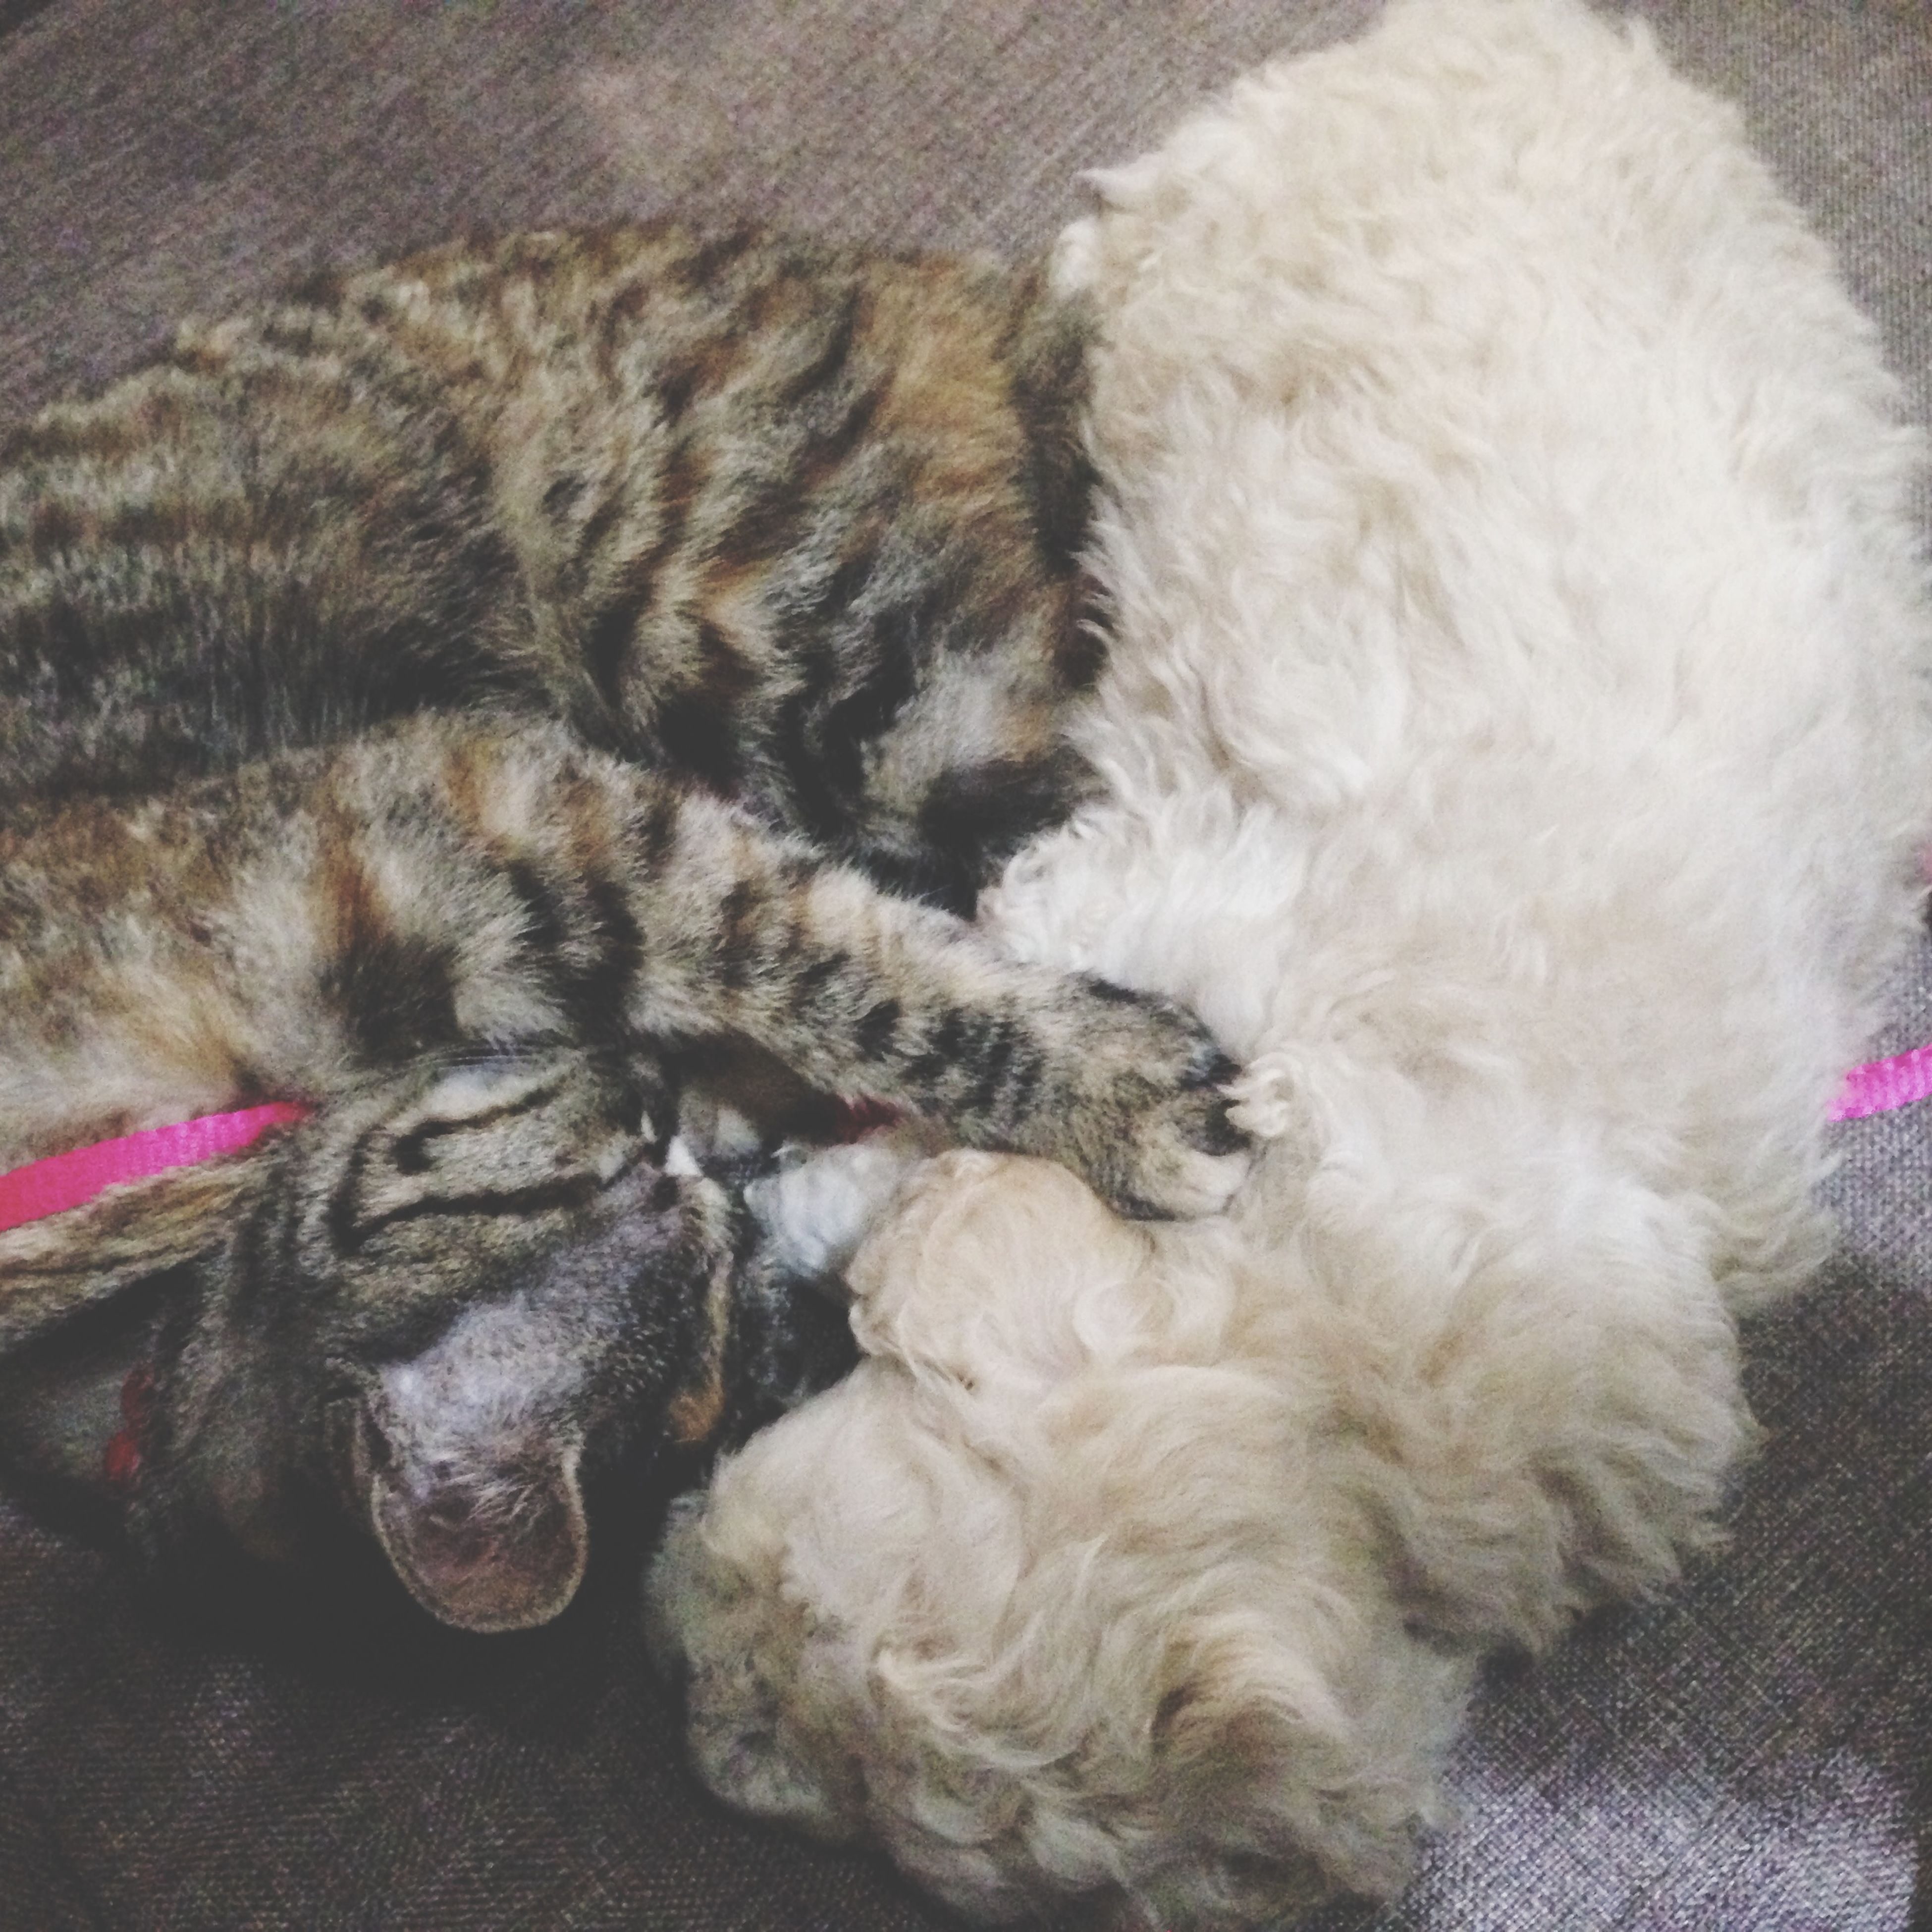 indoors, pets, domestic animals, animal themes, sleeping, mammal, one animal, relaxation, resting, domestic cat, high angle view, lying down, cat, bed, dog, home interior, comfortable, eyes closed, feline, no people